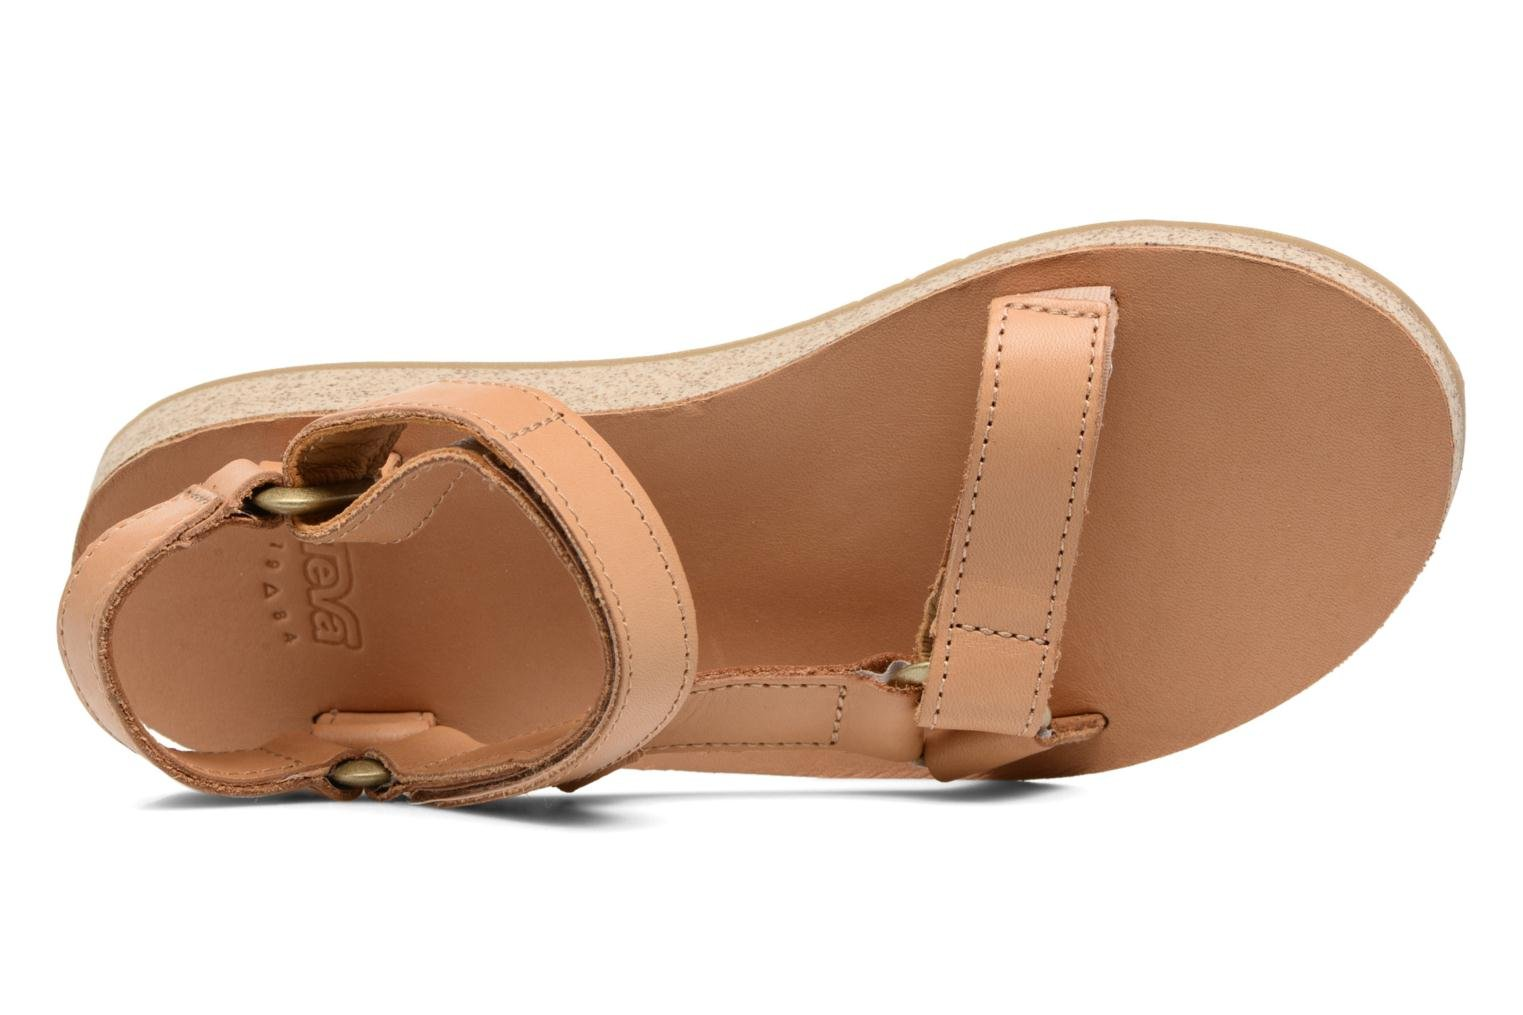 Original Universal Crafted Leather Tan